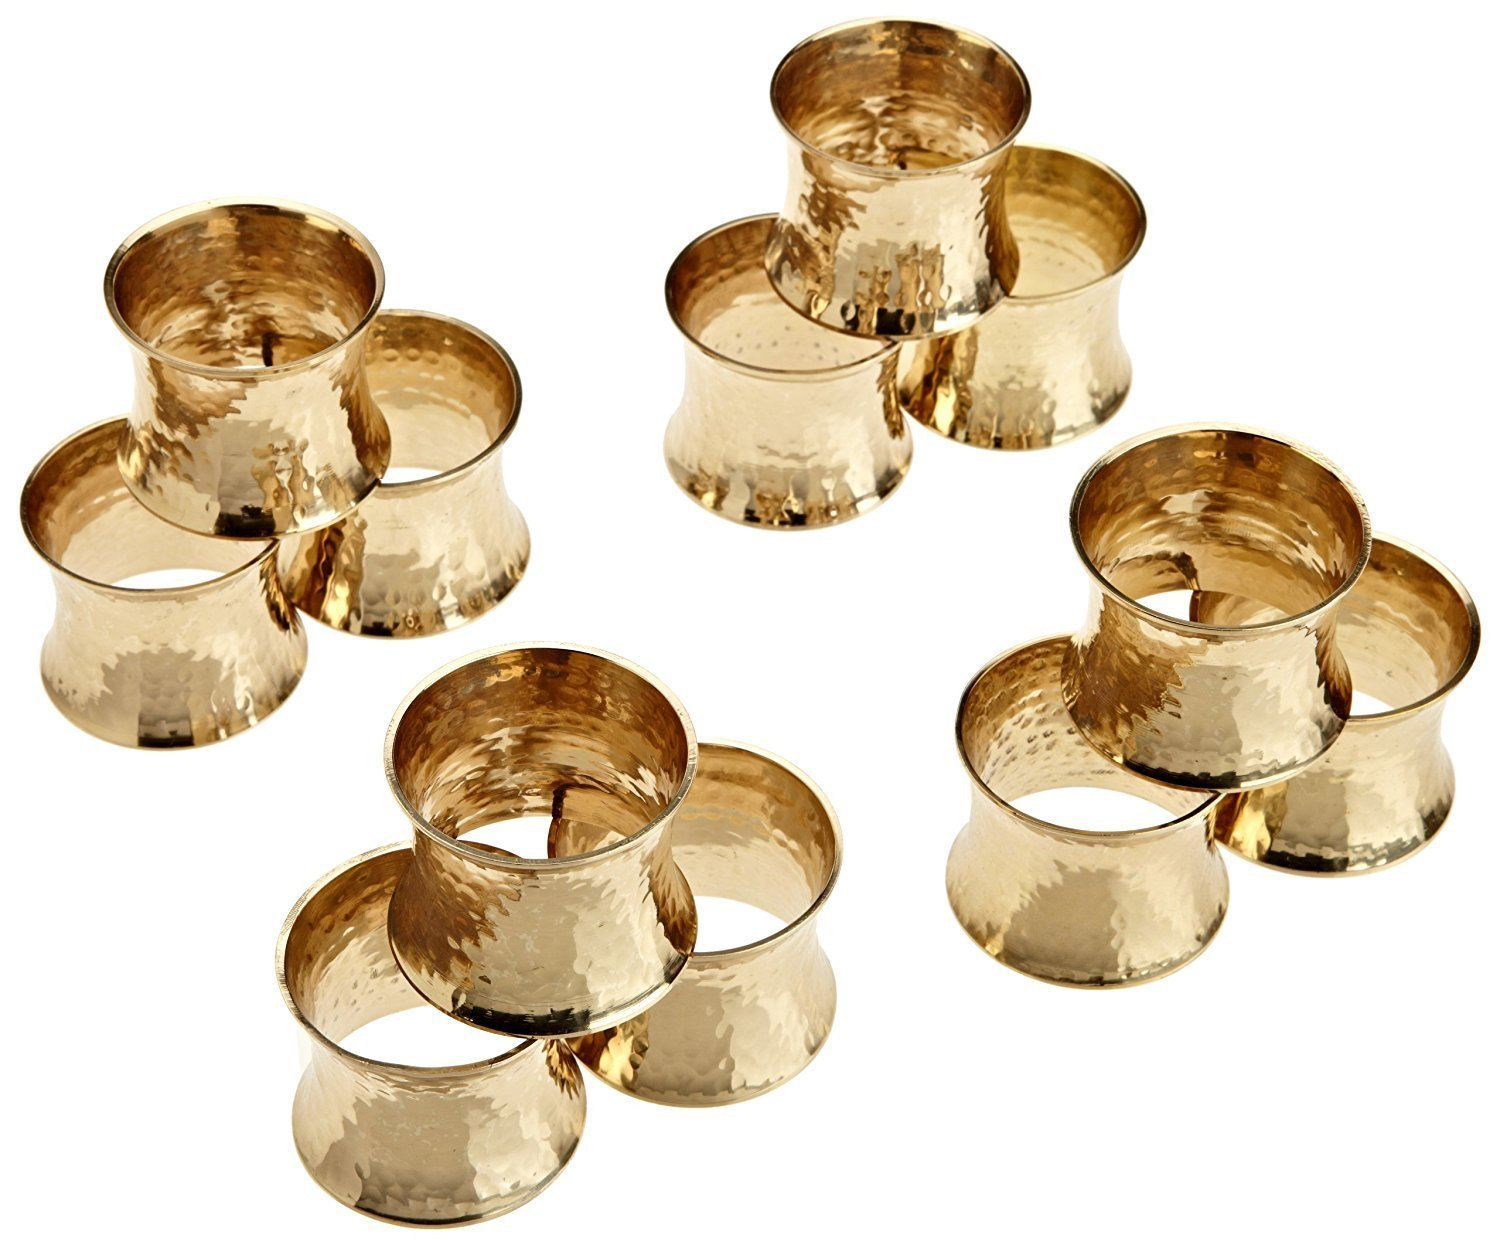 ARN Craft Handmade Wedding Party Decorations Brass hamara Napkin Rings Set of 4 Dinner Ideas  (CW- 16-4)